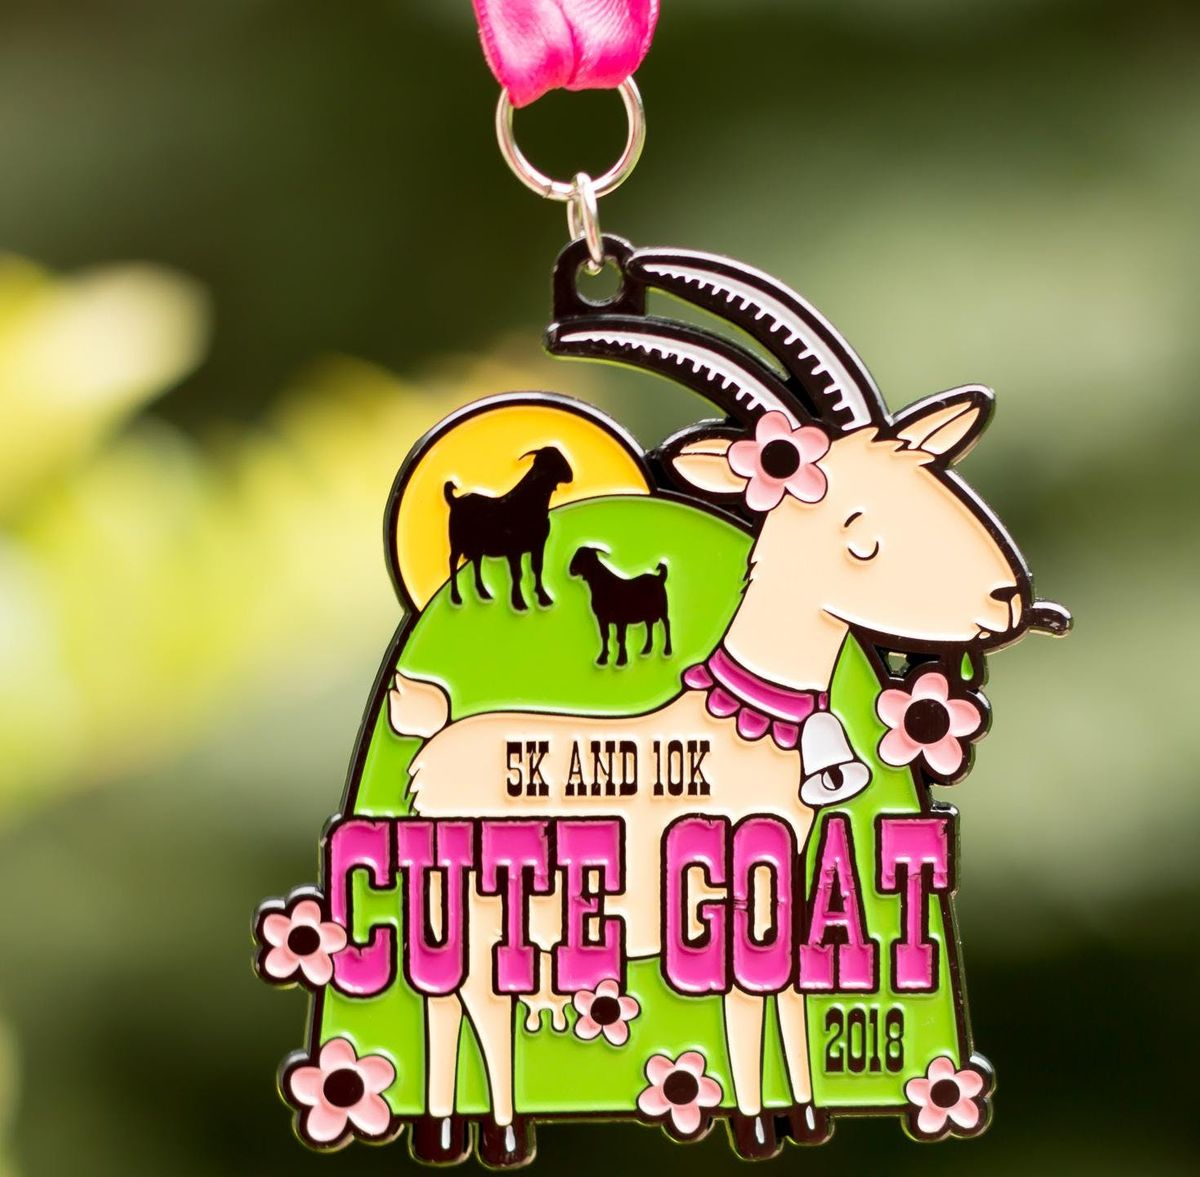 Now Only 10 Cute Goat 5K & 10K - Indianapolis